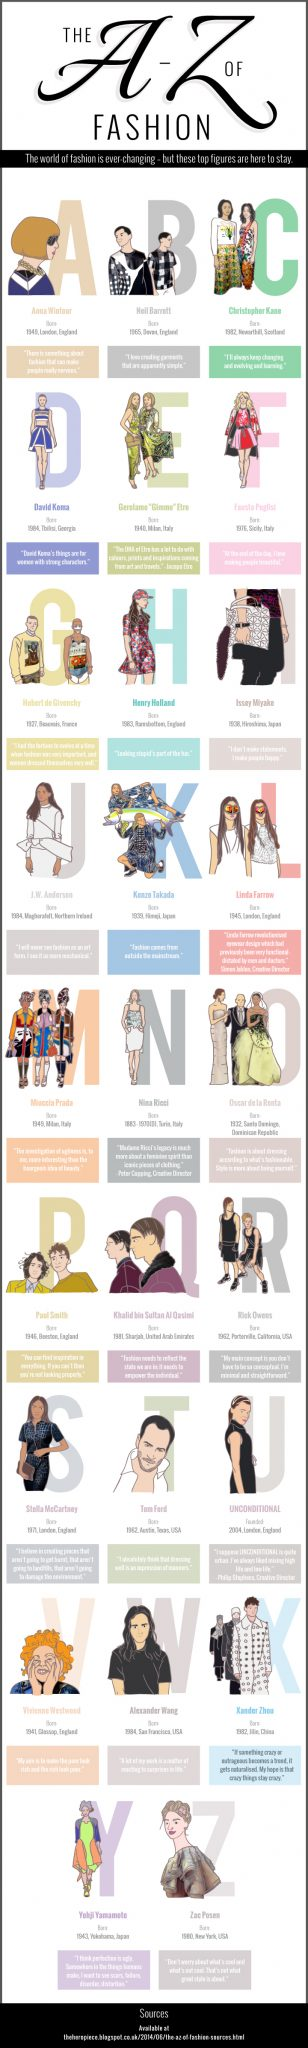 The-A-Z-of-Fashion-2